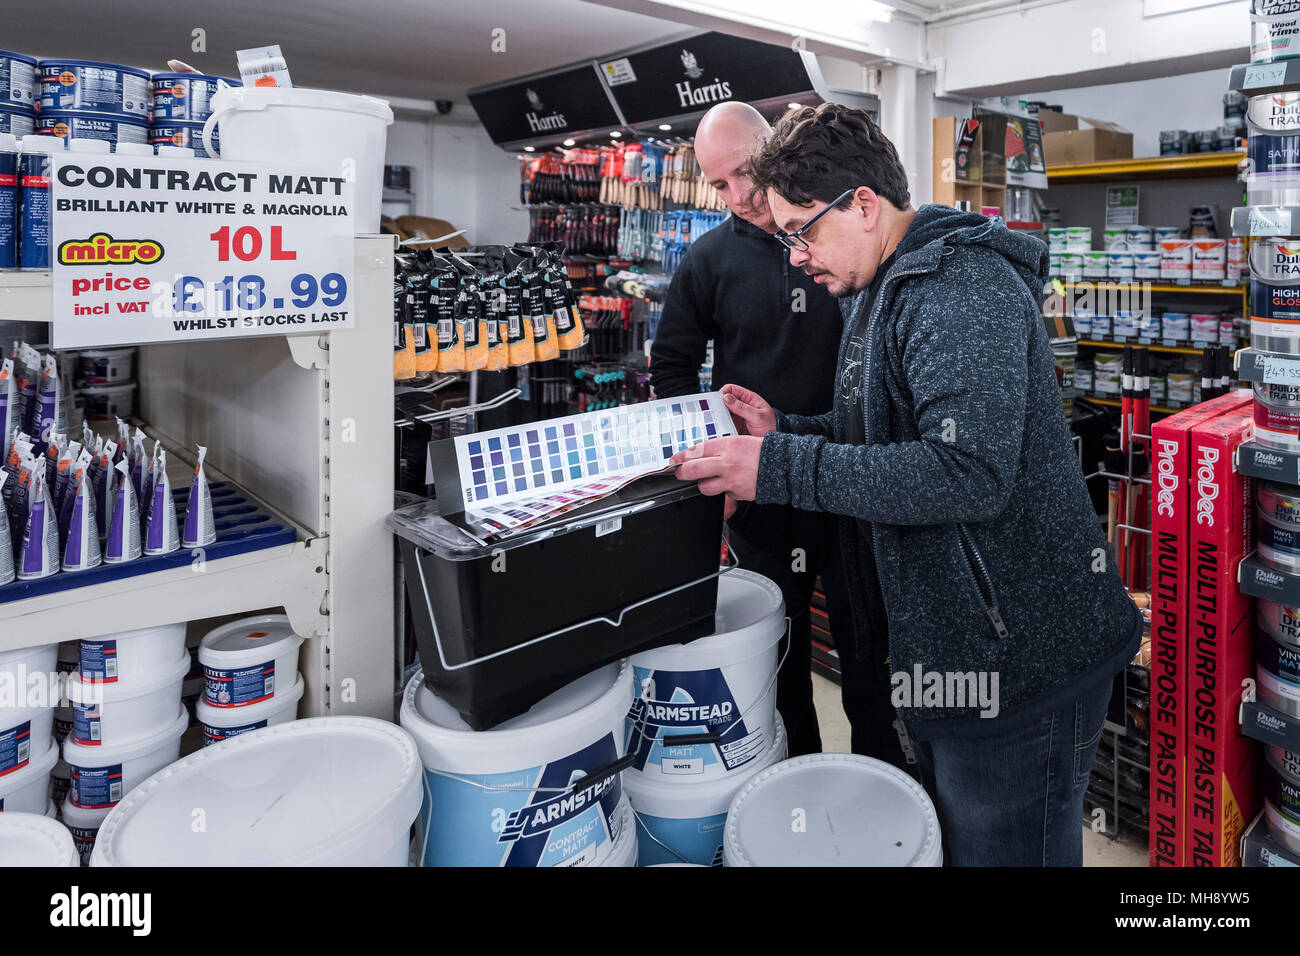 A staff member advising a customer in a DIY shop. - Stock Image